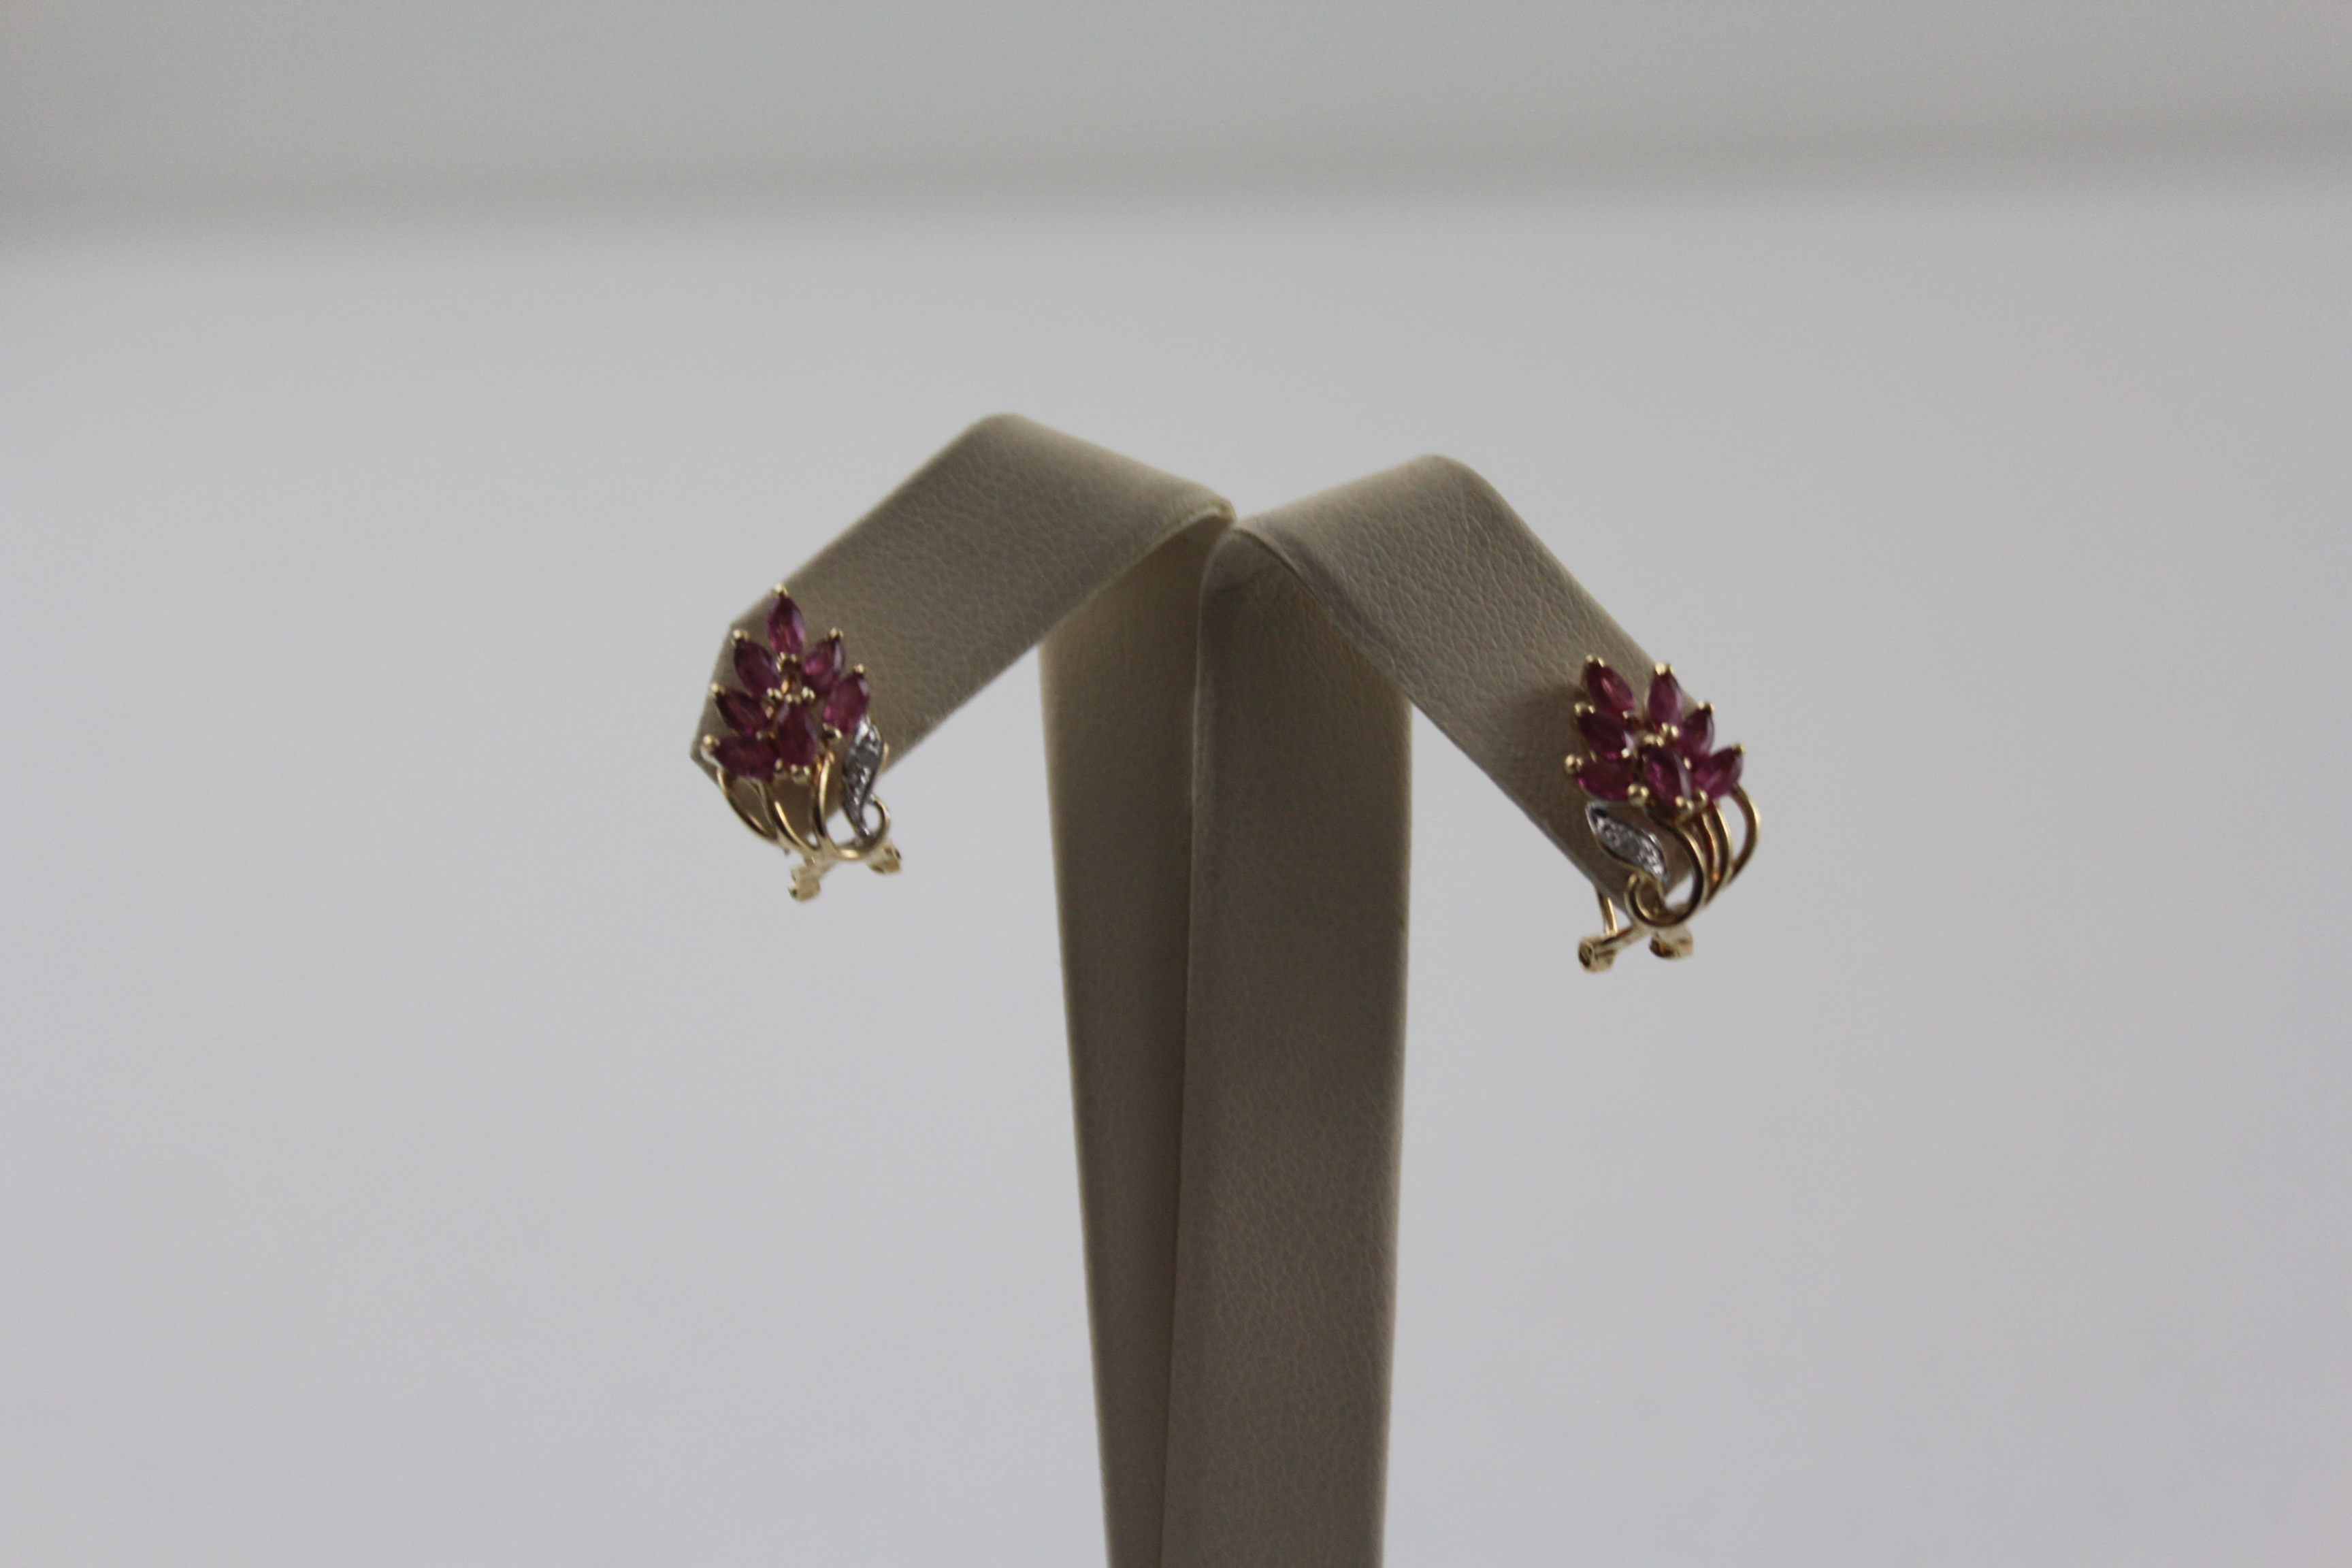 14K Yellow Gold with Pink Stones Earrings